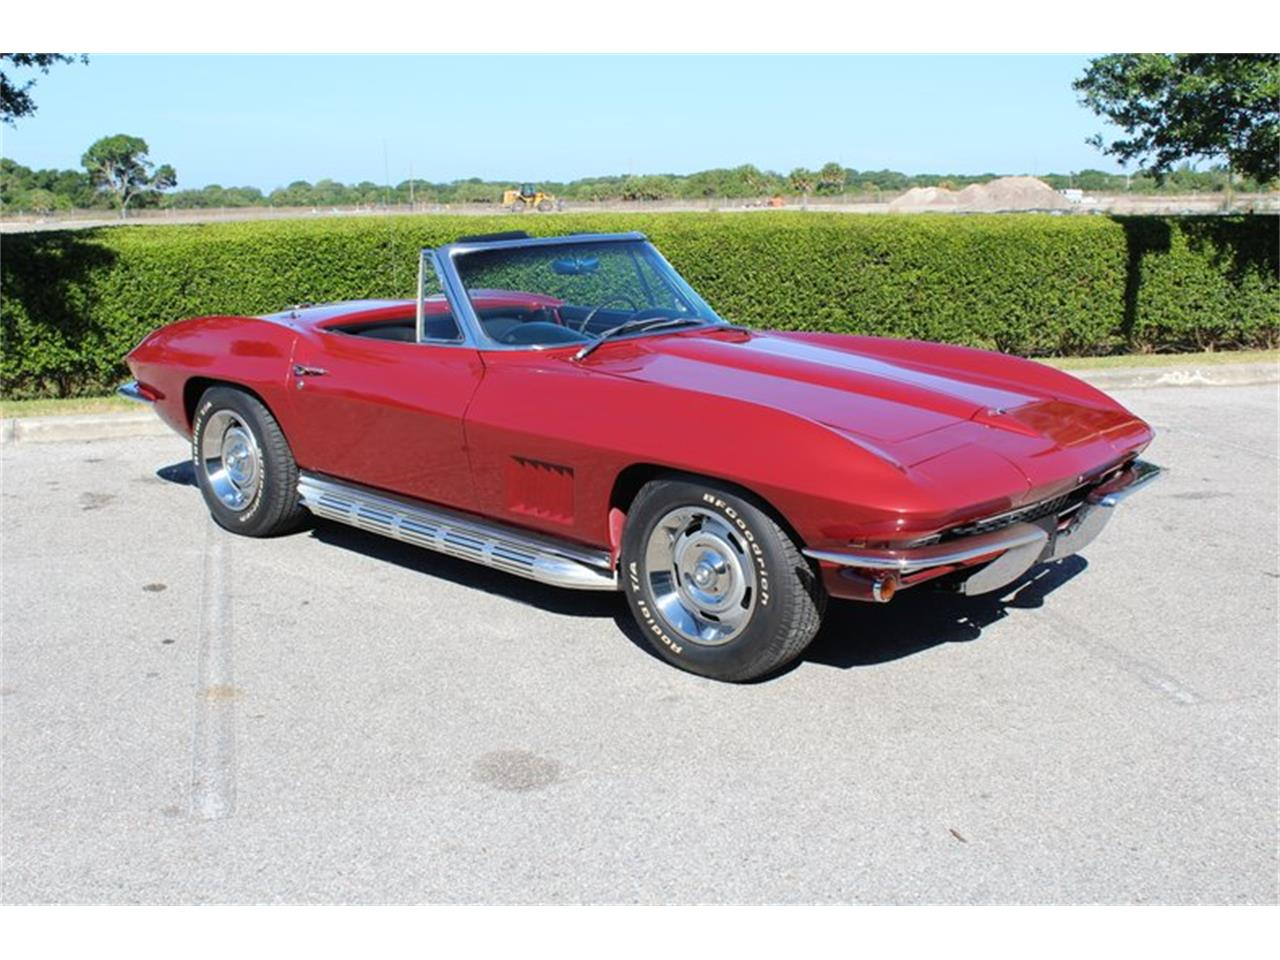 Large Picture of Classic '67 Chevrolet Corvette Stingray located in Sarasota Florida - $54,900.00 - PVTL